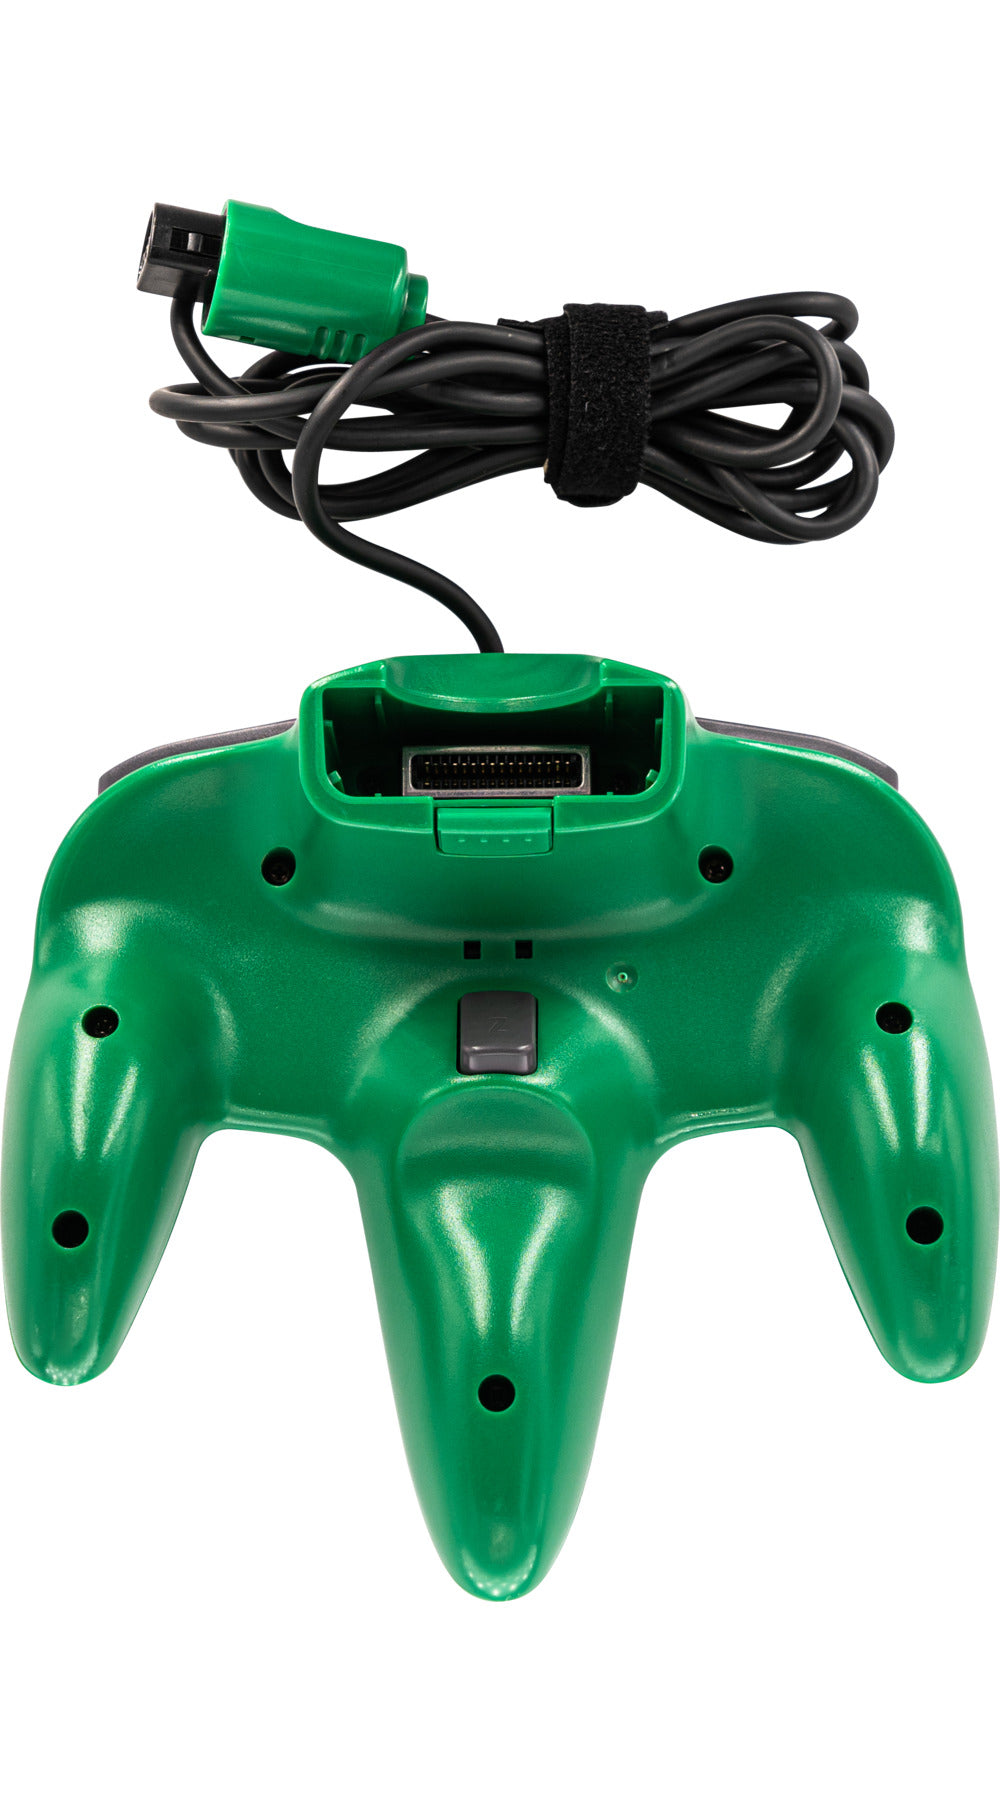 Nintendo N64 Controller Original Green - Video Game Delivery